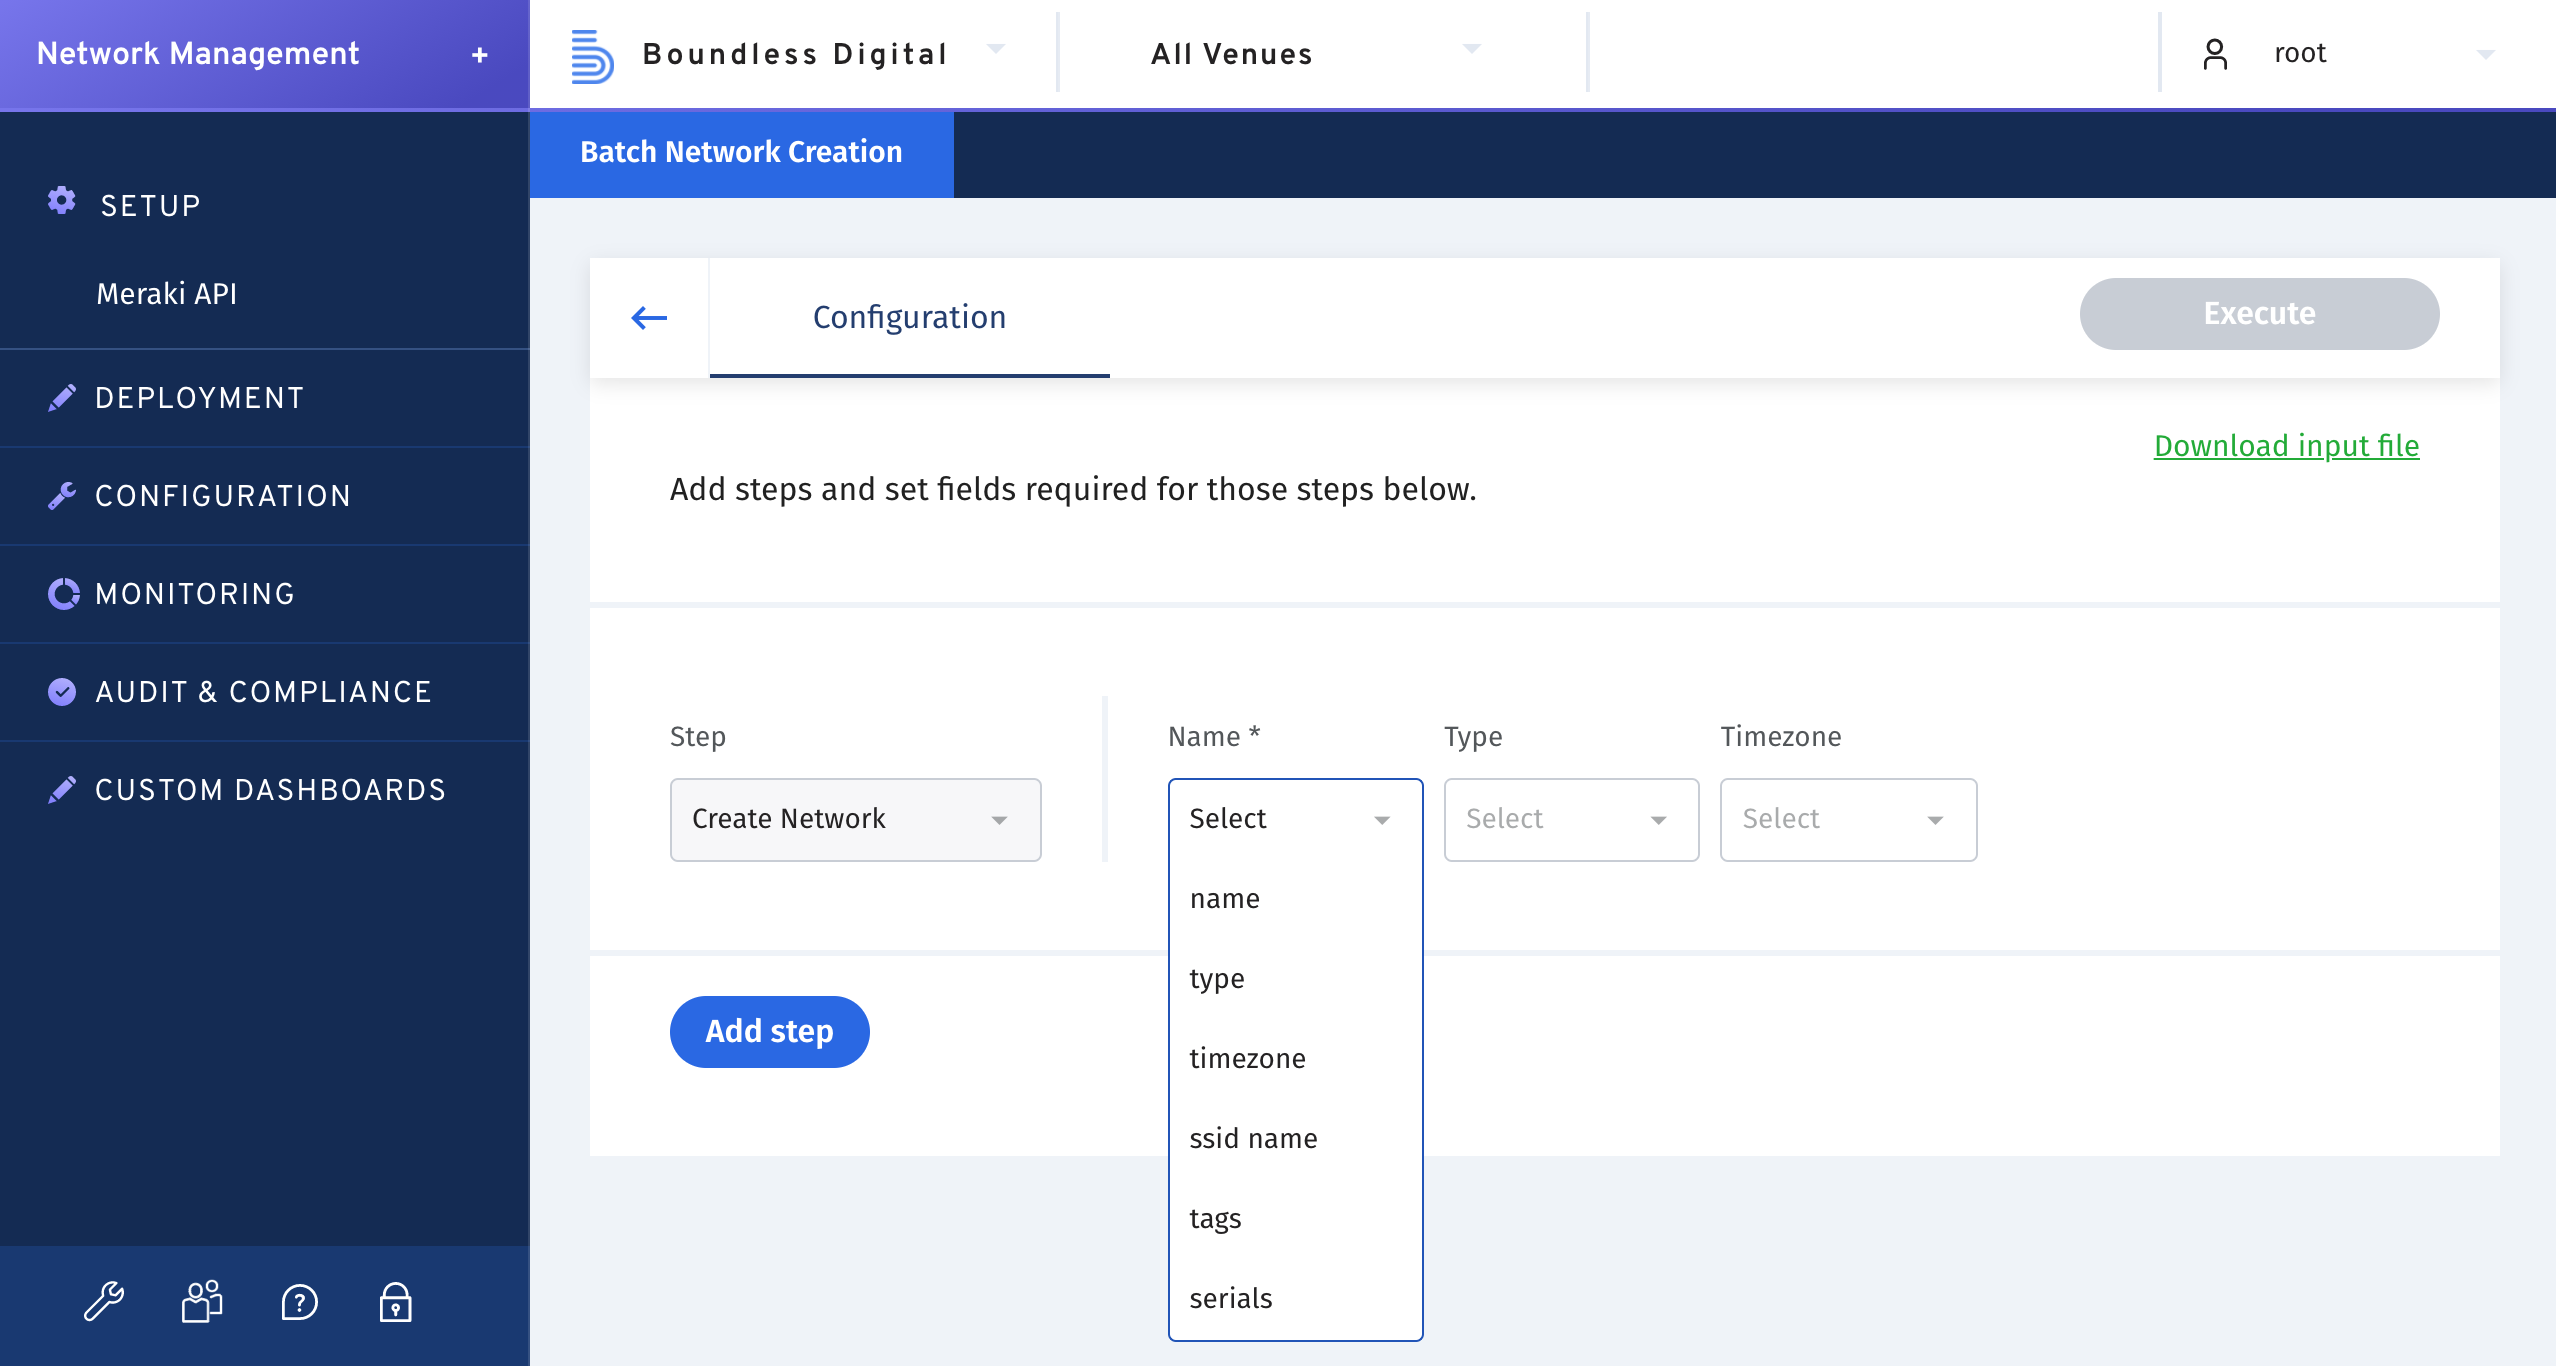 Deploy and provision networks in batches. Build custom workflows to automate the deployment and provisioning of hundreds of networks in just a few clicks and with no risk of human error.